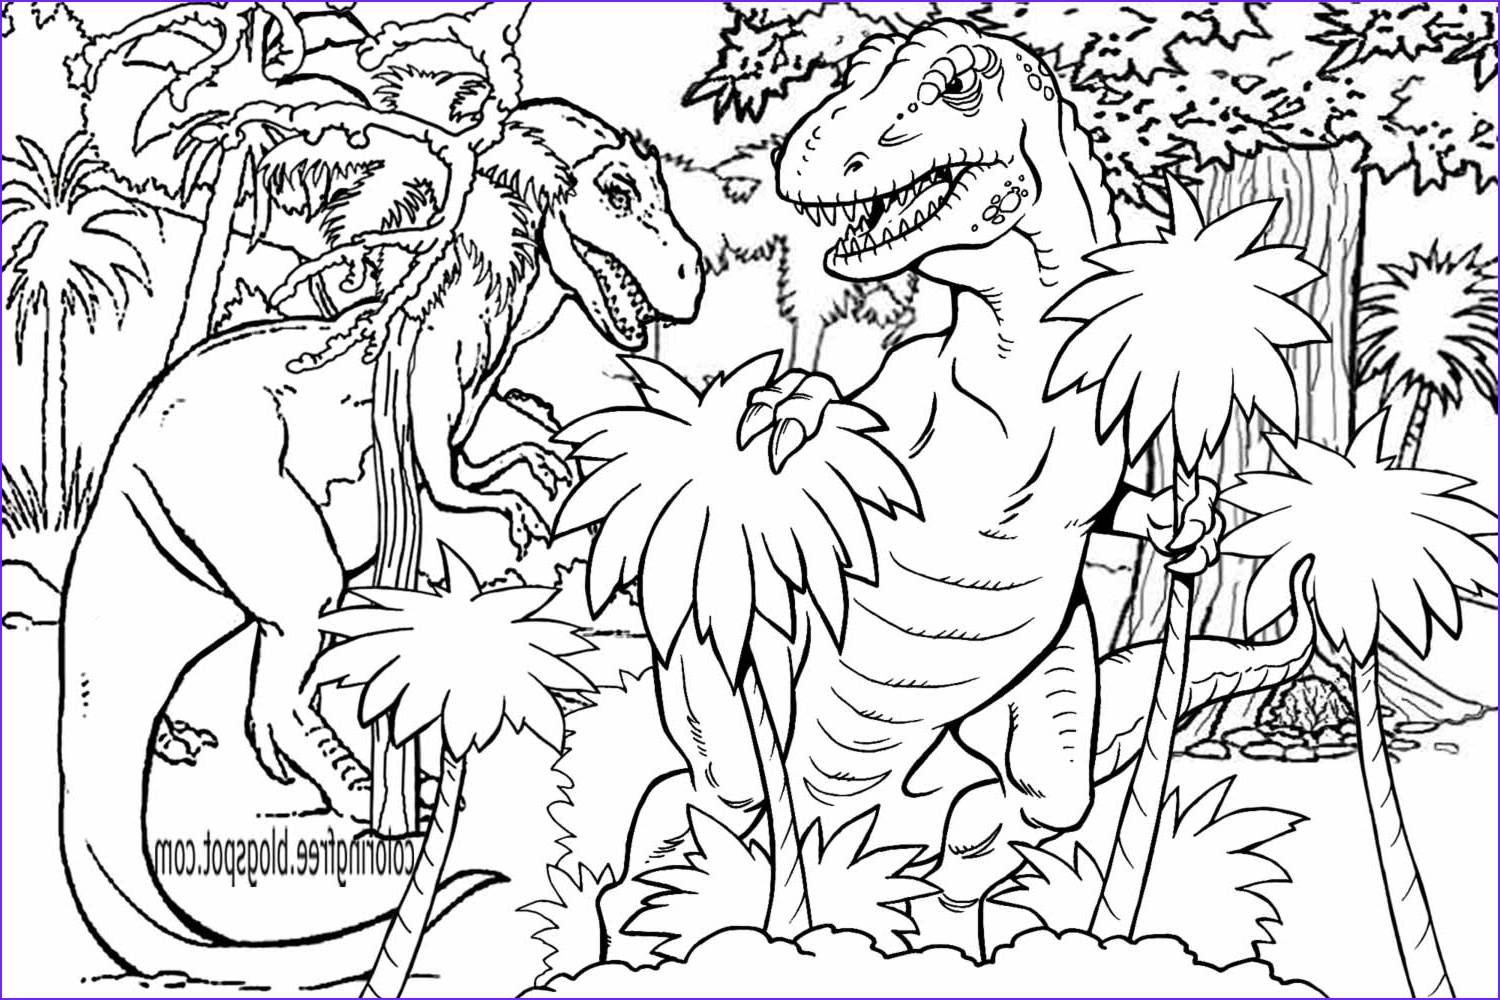 Dinosaur Coloring Awesome Images Free Coloring Pages Printable to Color Kids